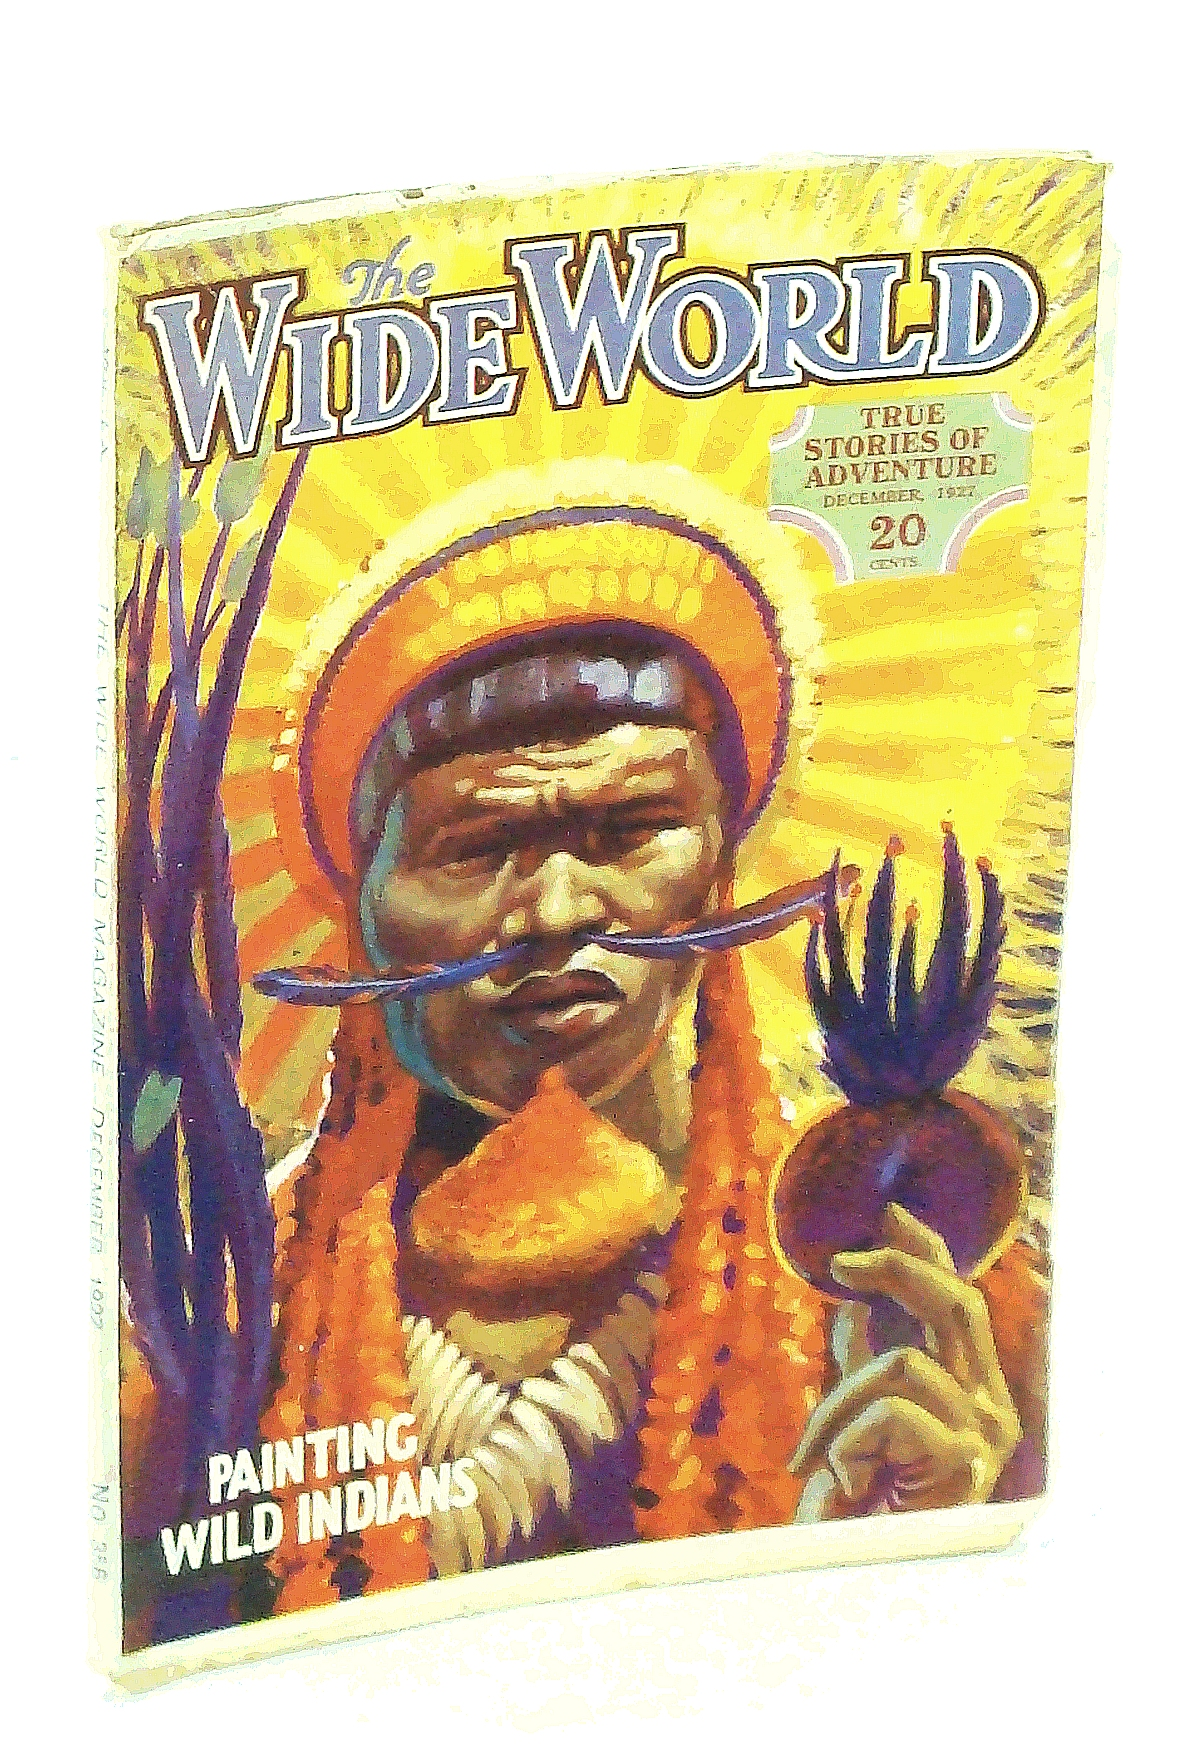 Image for The Wide World Magazine - True Stories of Adventure, December [Dec.] 1927, Vol. LX, No. 356: Through Arctic Seas / Hunting the Long-Haired Chinese Tiger